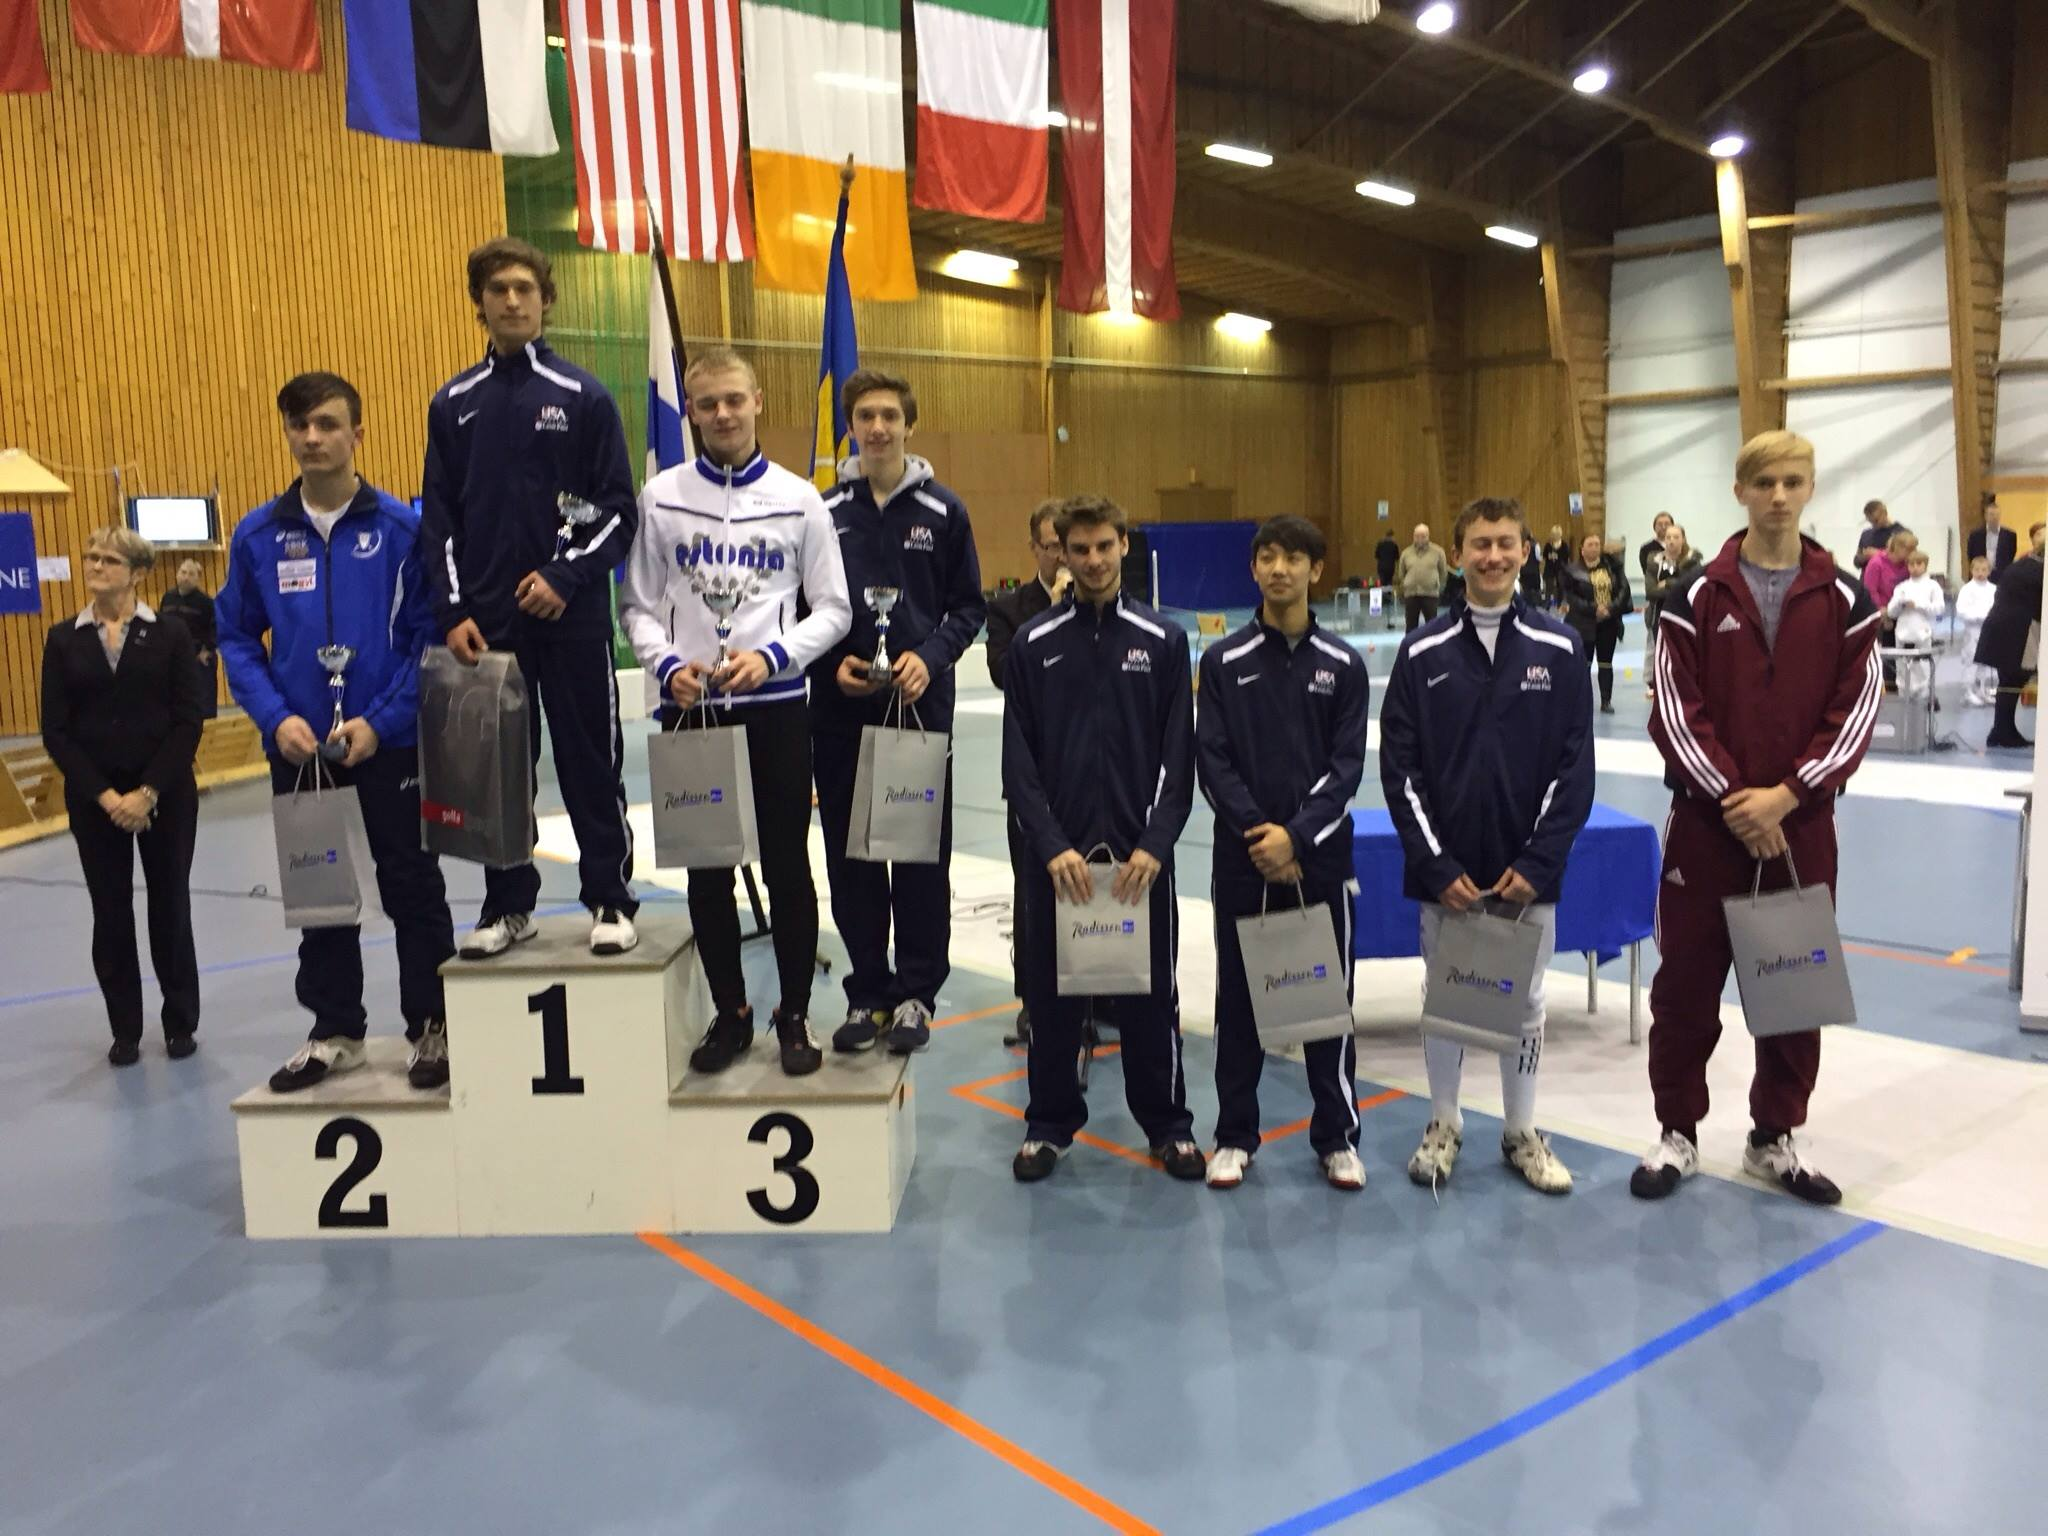 Olympia S Fencer Places Seventh At The European Cadet